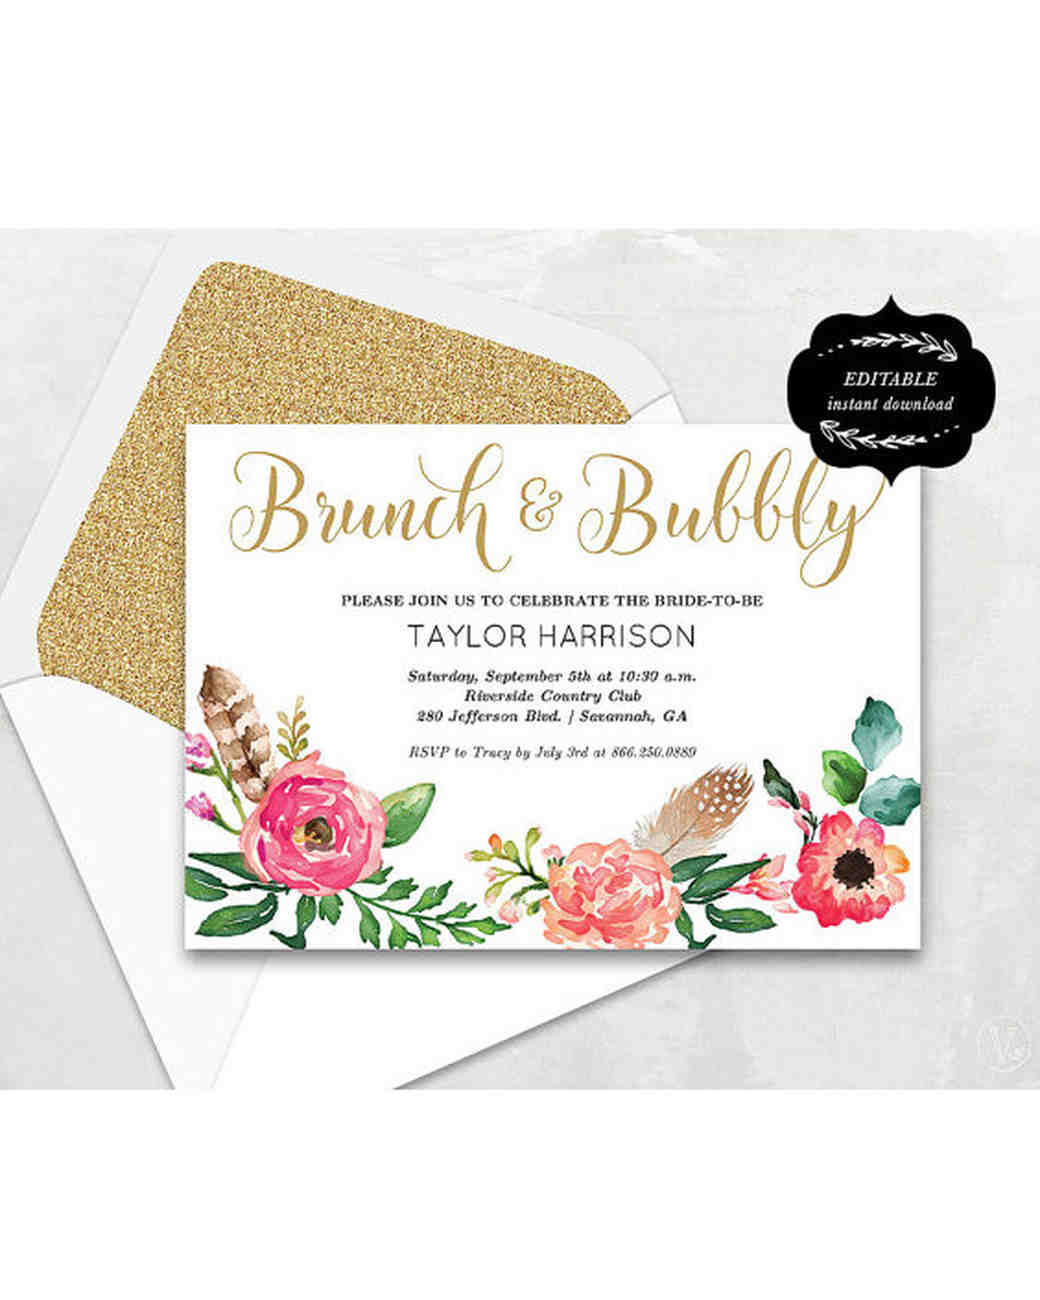 10 Affordable Bridal Shower Invitations You Can Print at Home ...